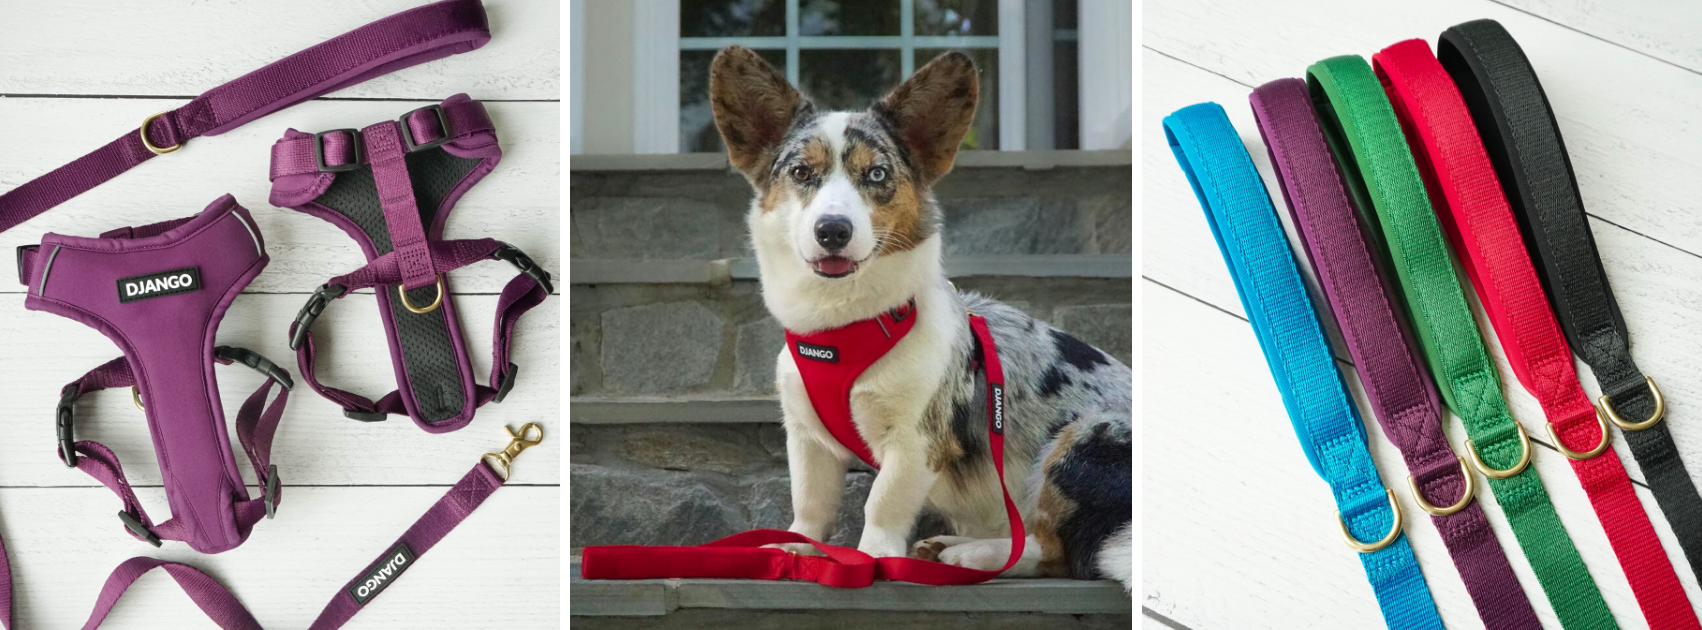 Best dog harness and leash let for corgi dogs and other small and medium sized dog breeds and puppies - djangobrand.com